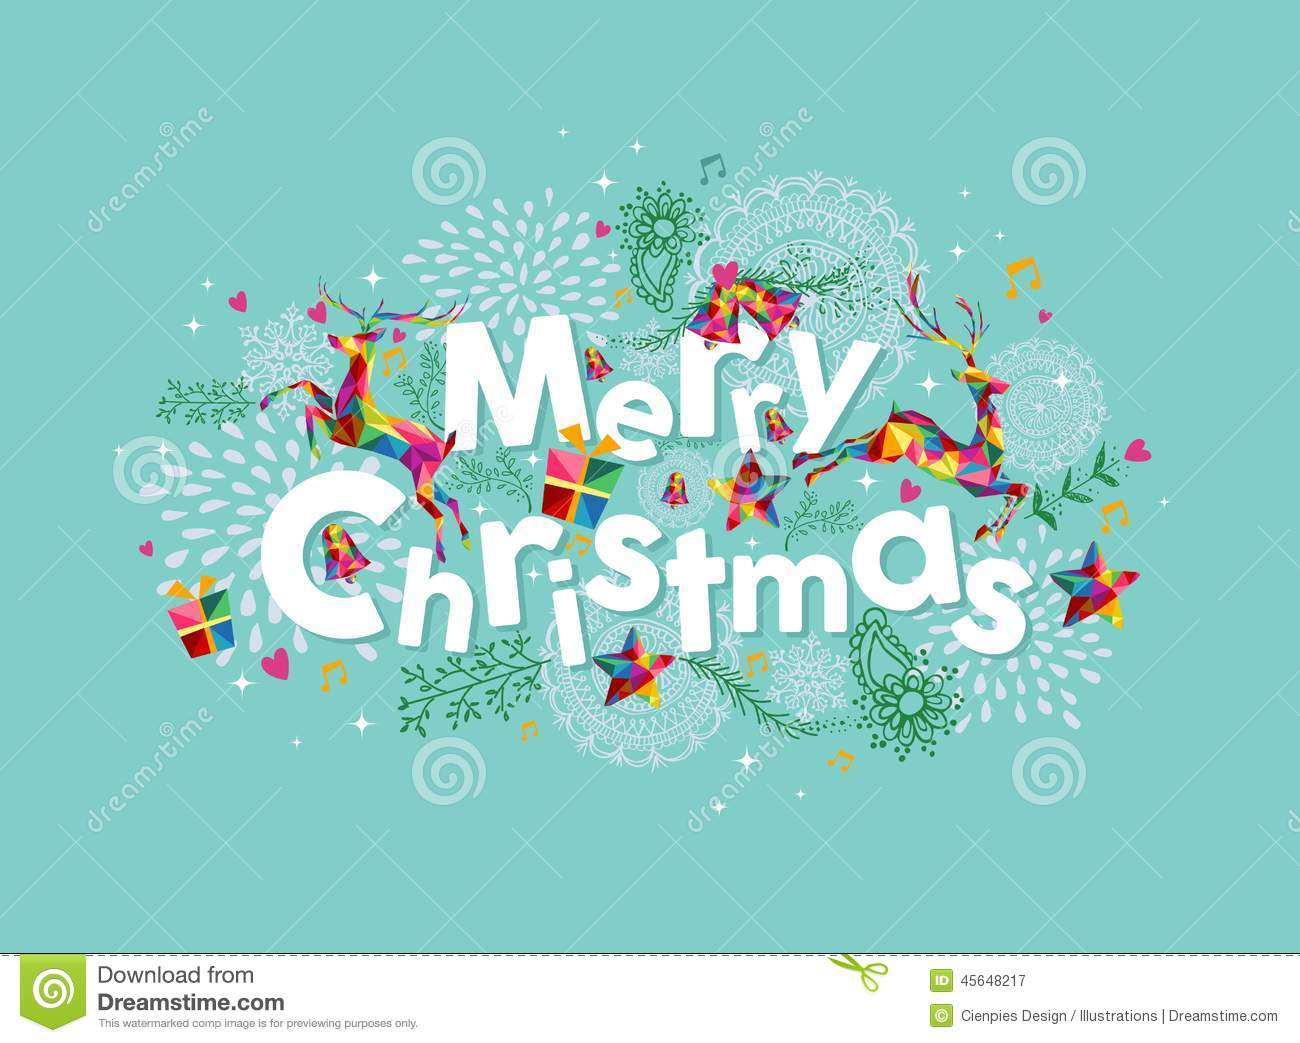 Merry christmas contemporary greeting card stock vector merry christmas contemporary greeting card royalty free vector m4hsunfo